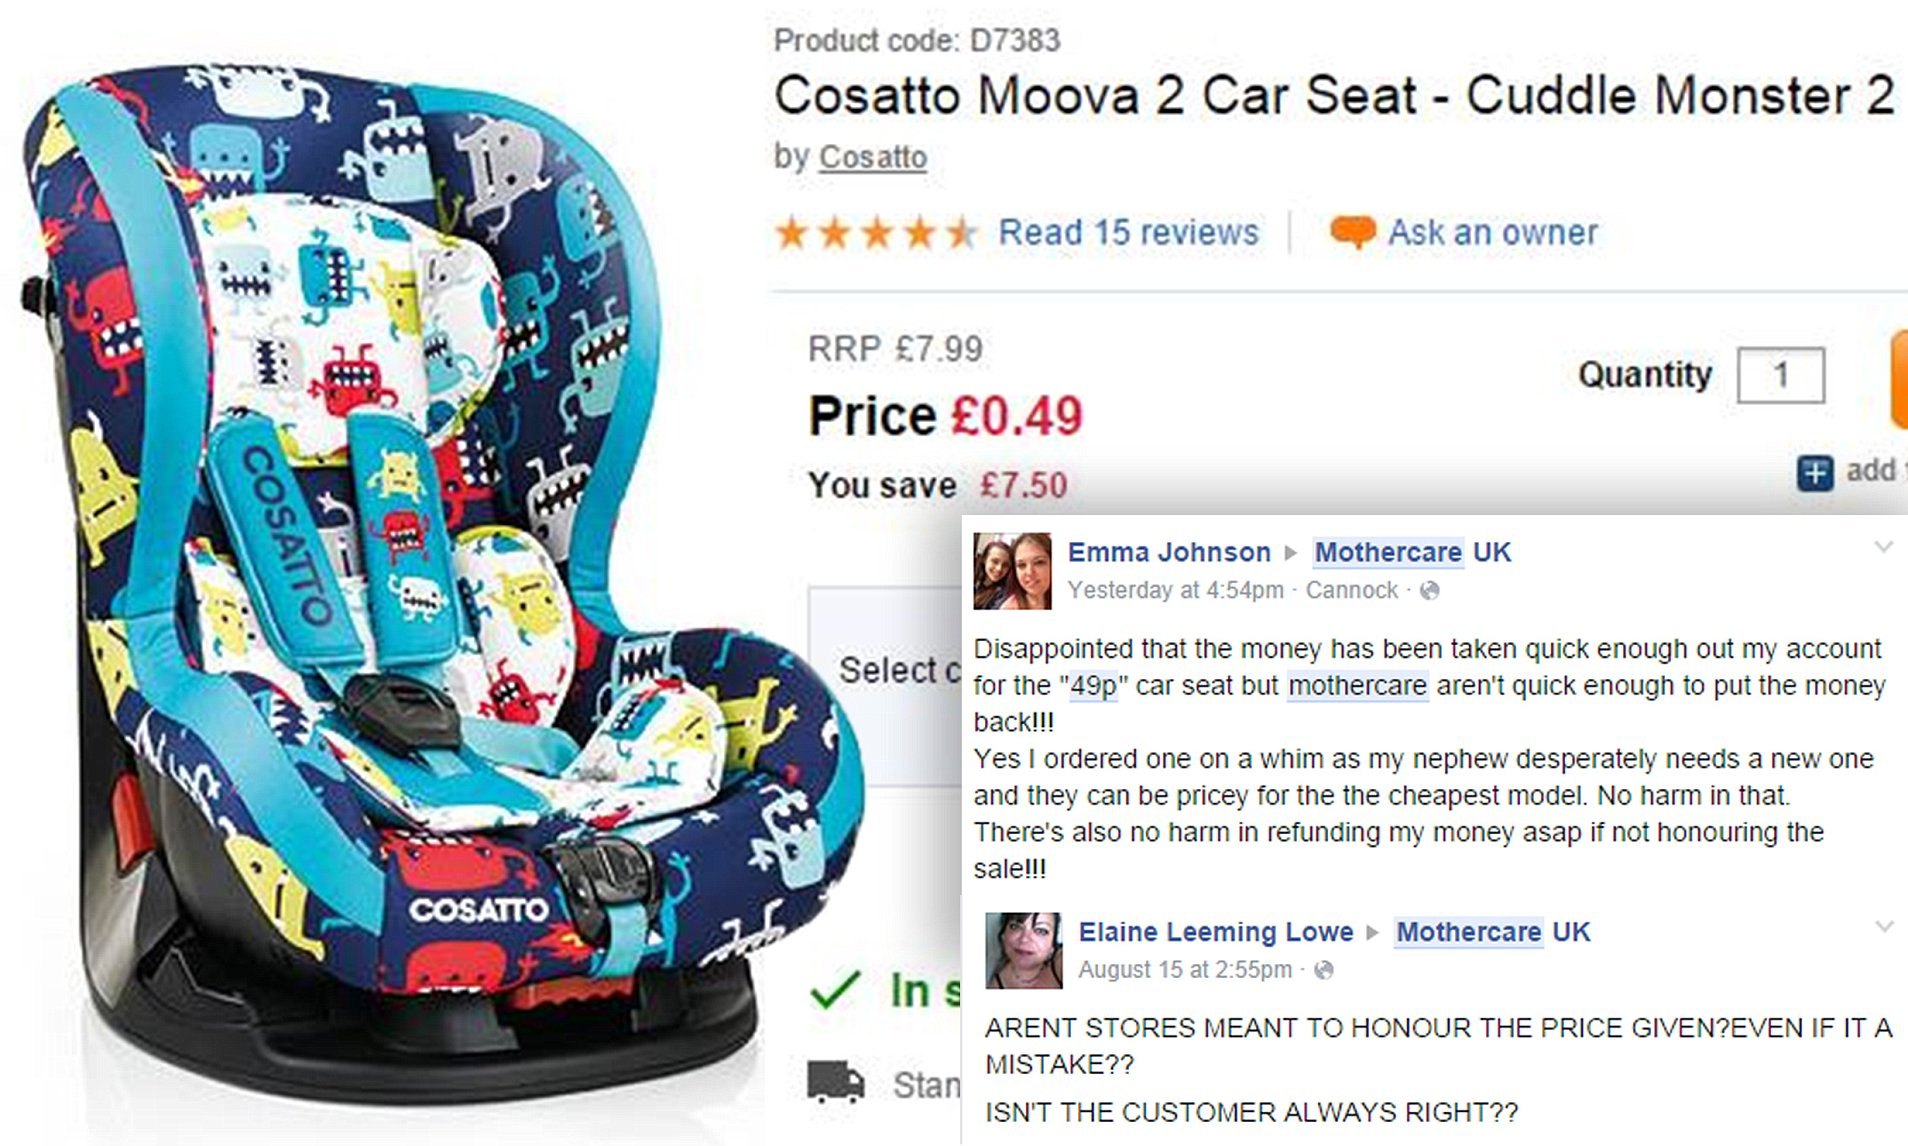 Oyster Double Pram Mothercare Mothercare Offers 135 Cosatto Moova Car Seat For 49p In